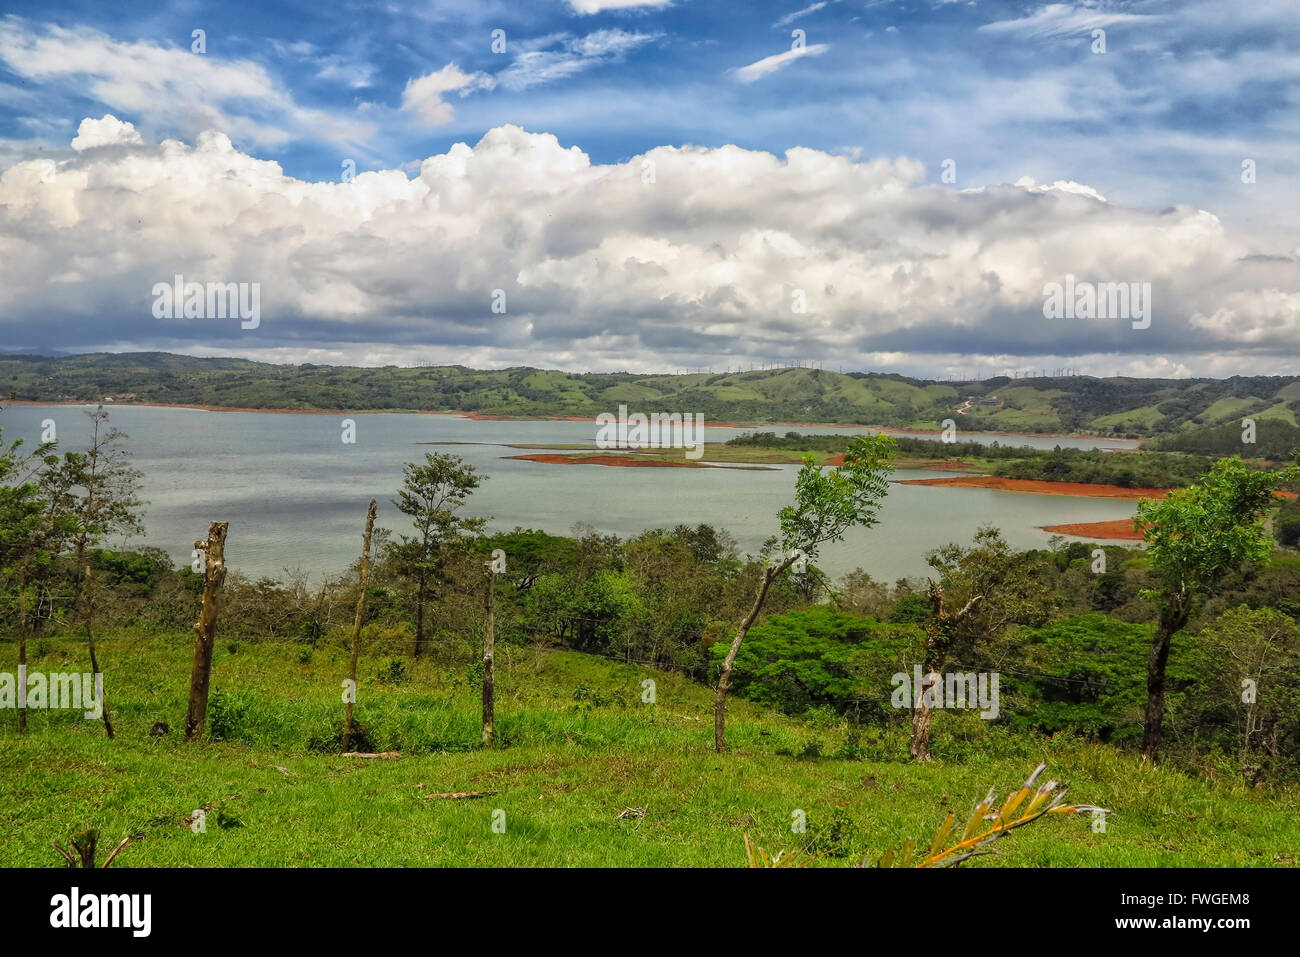 View on Lake Arenal in Costa Rica - Stock Image